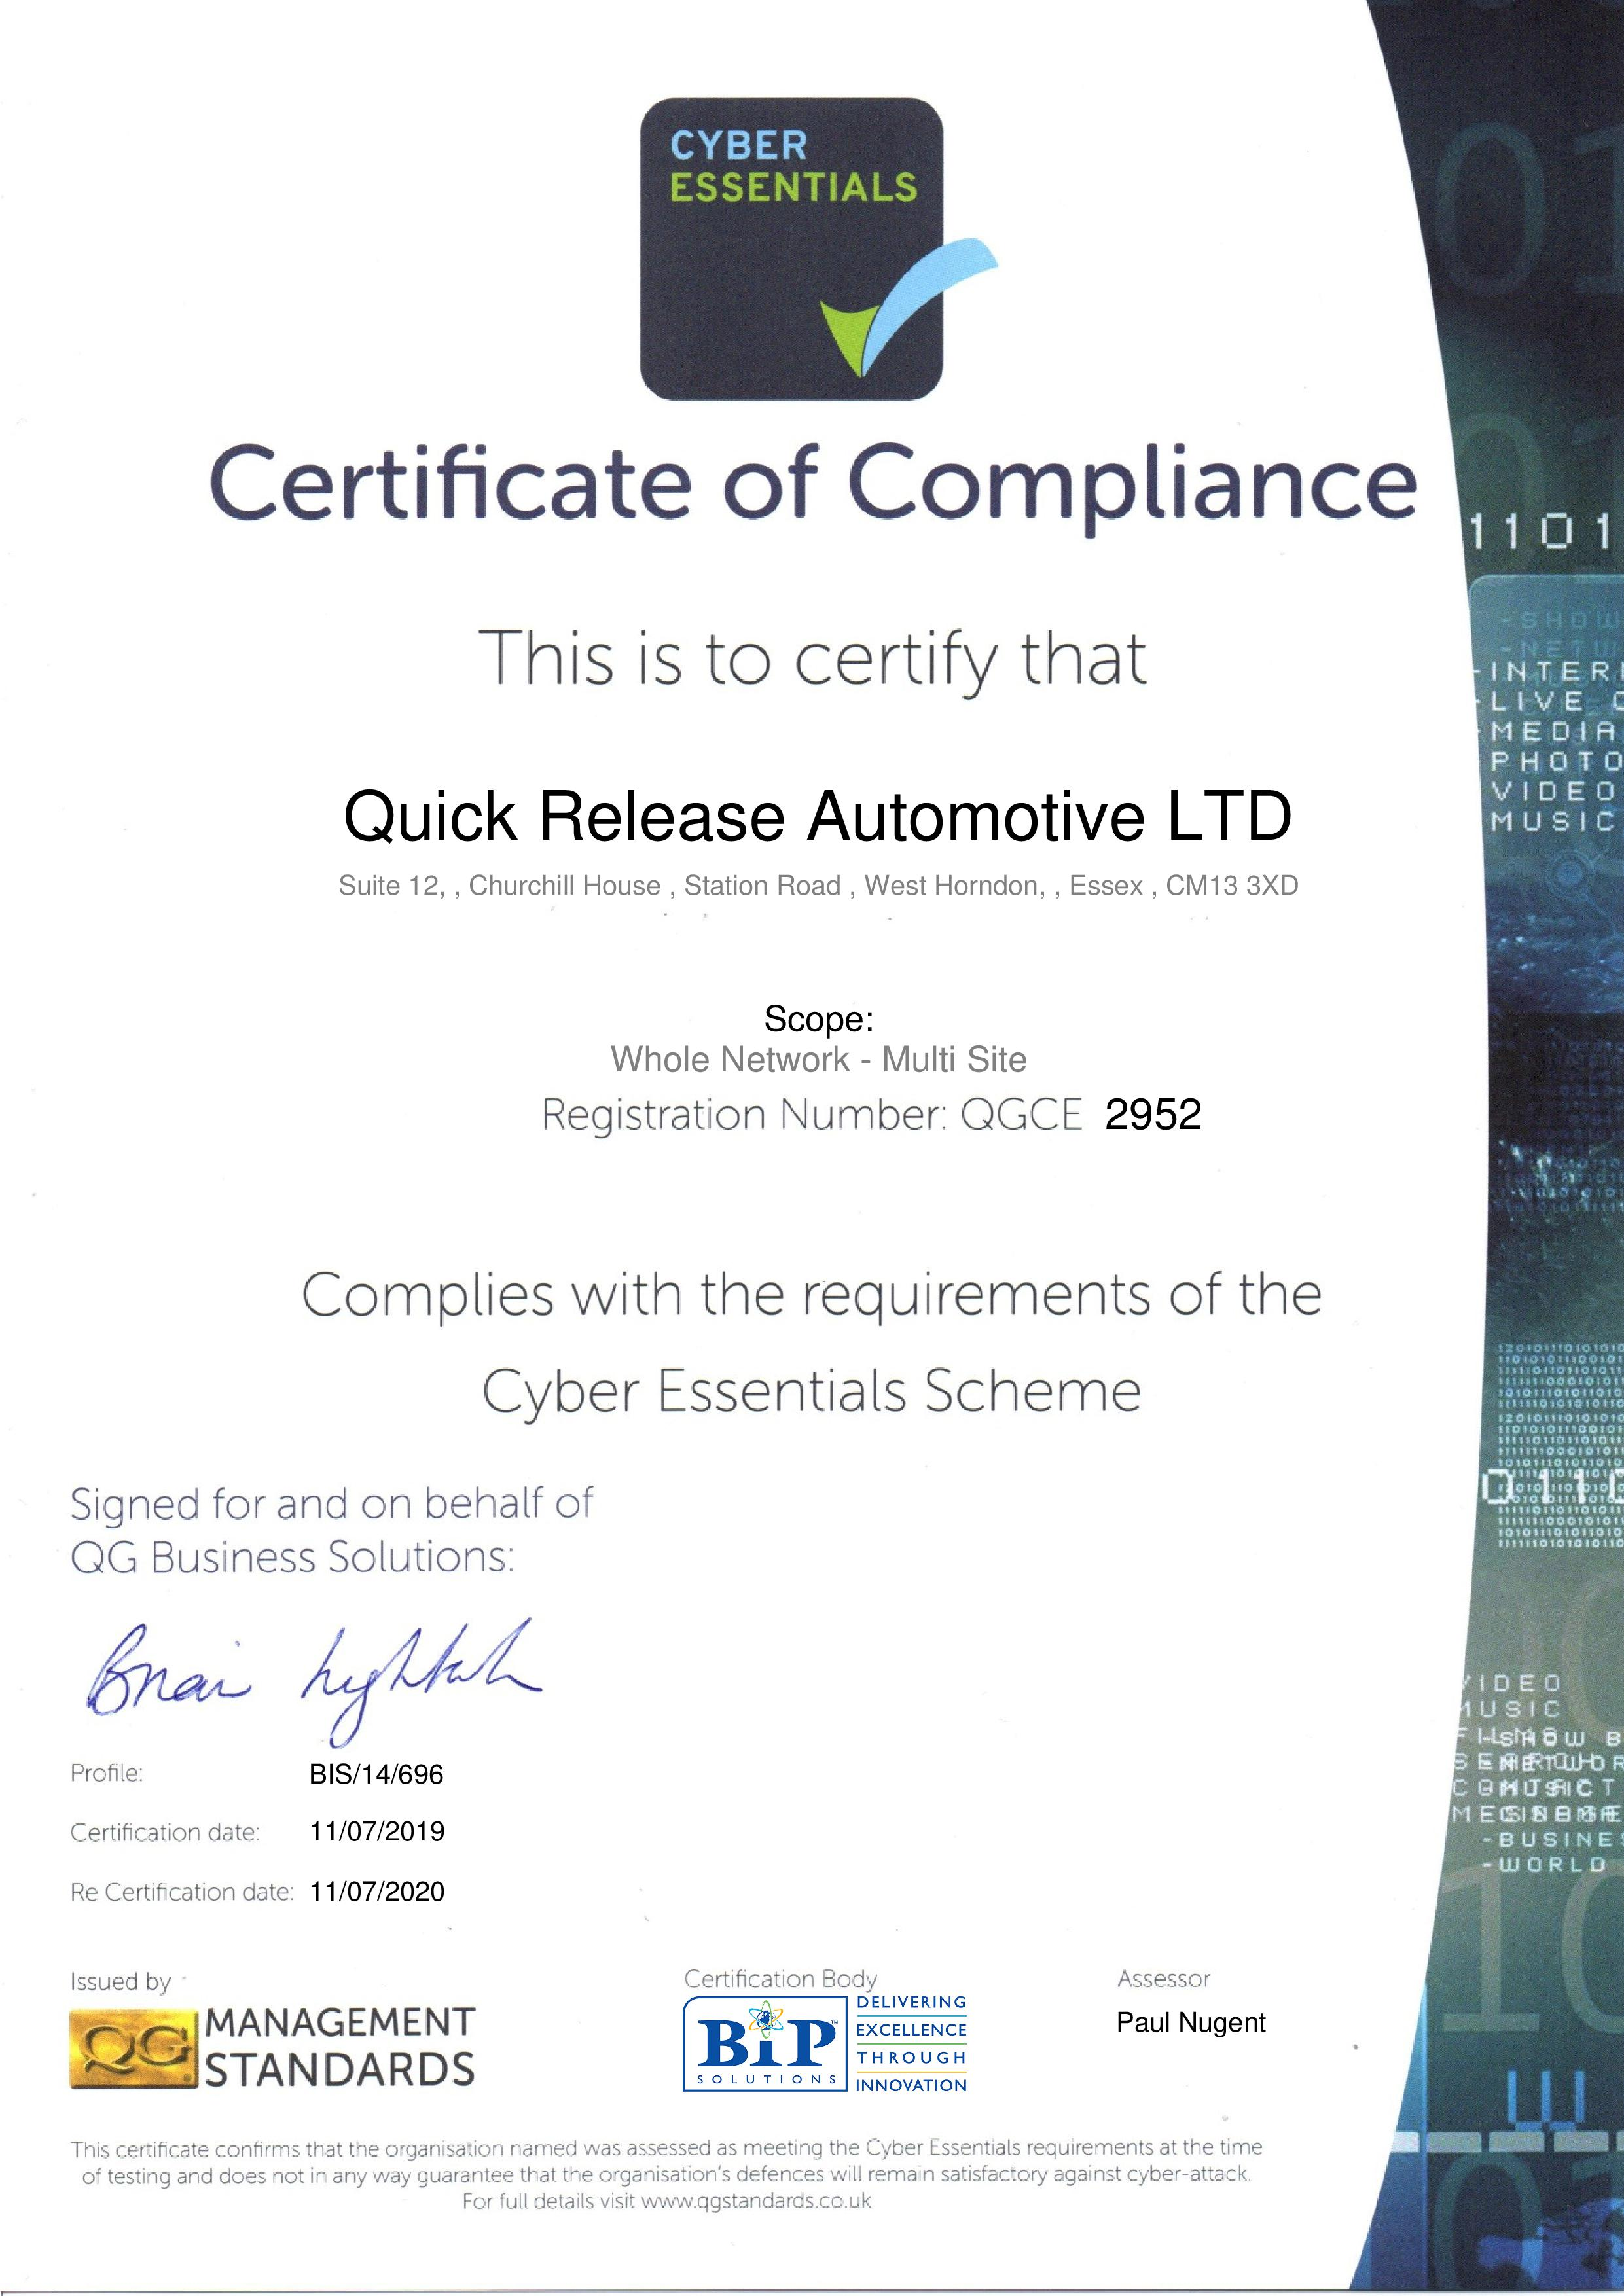 QGCE2952 Quick Release Automotive LTD